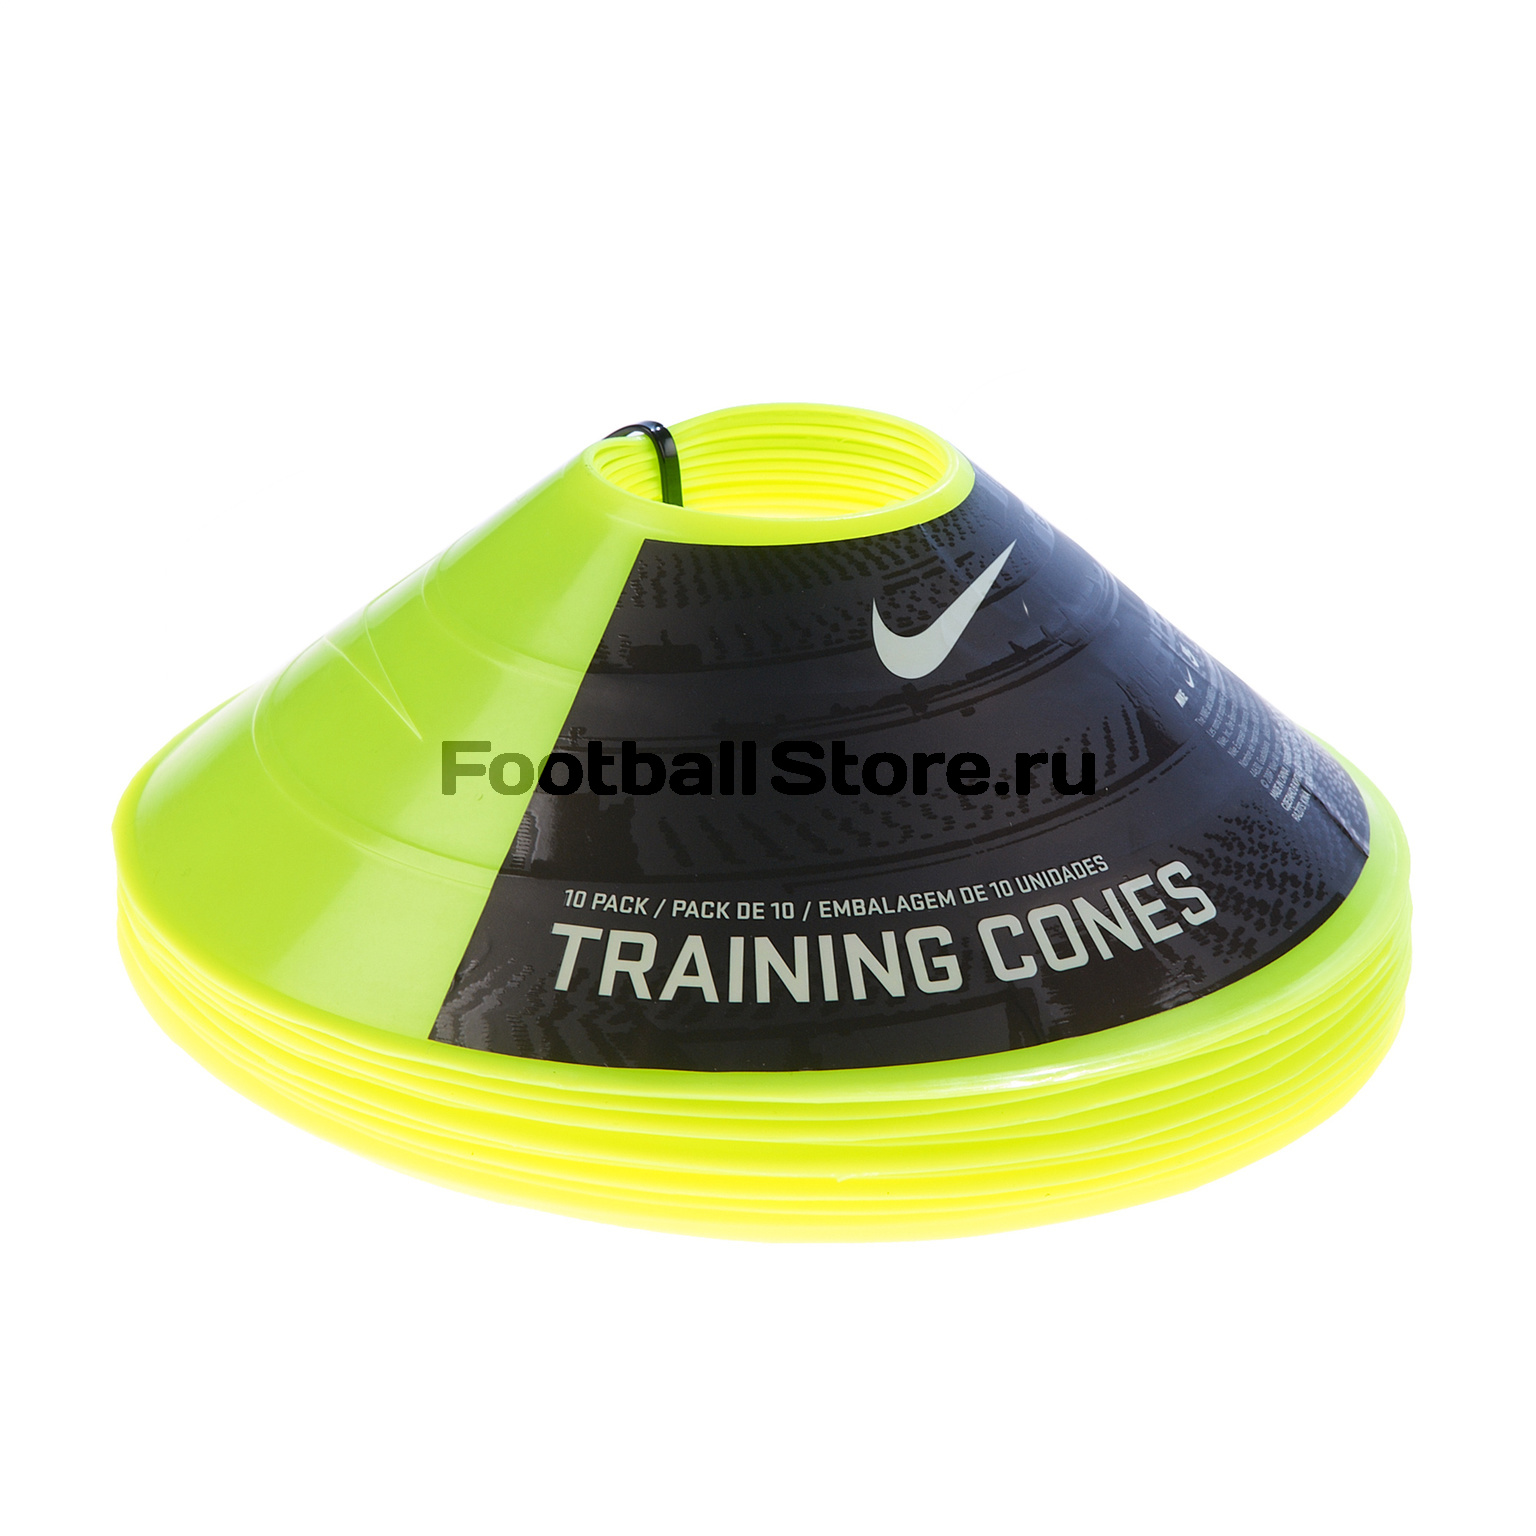 Набор конусов для тренировок Nike 10 Pack Training Cones N.SR.08.709.NS cкакалка nike weighted rope 2 0 ns grey black bright citrus